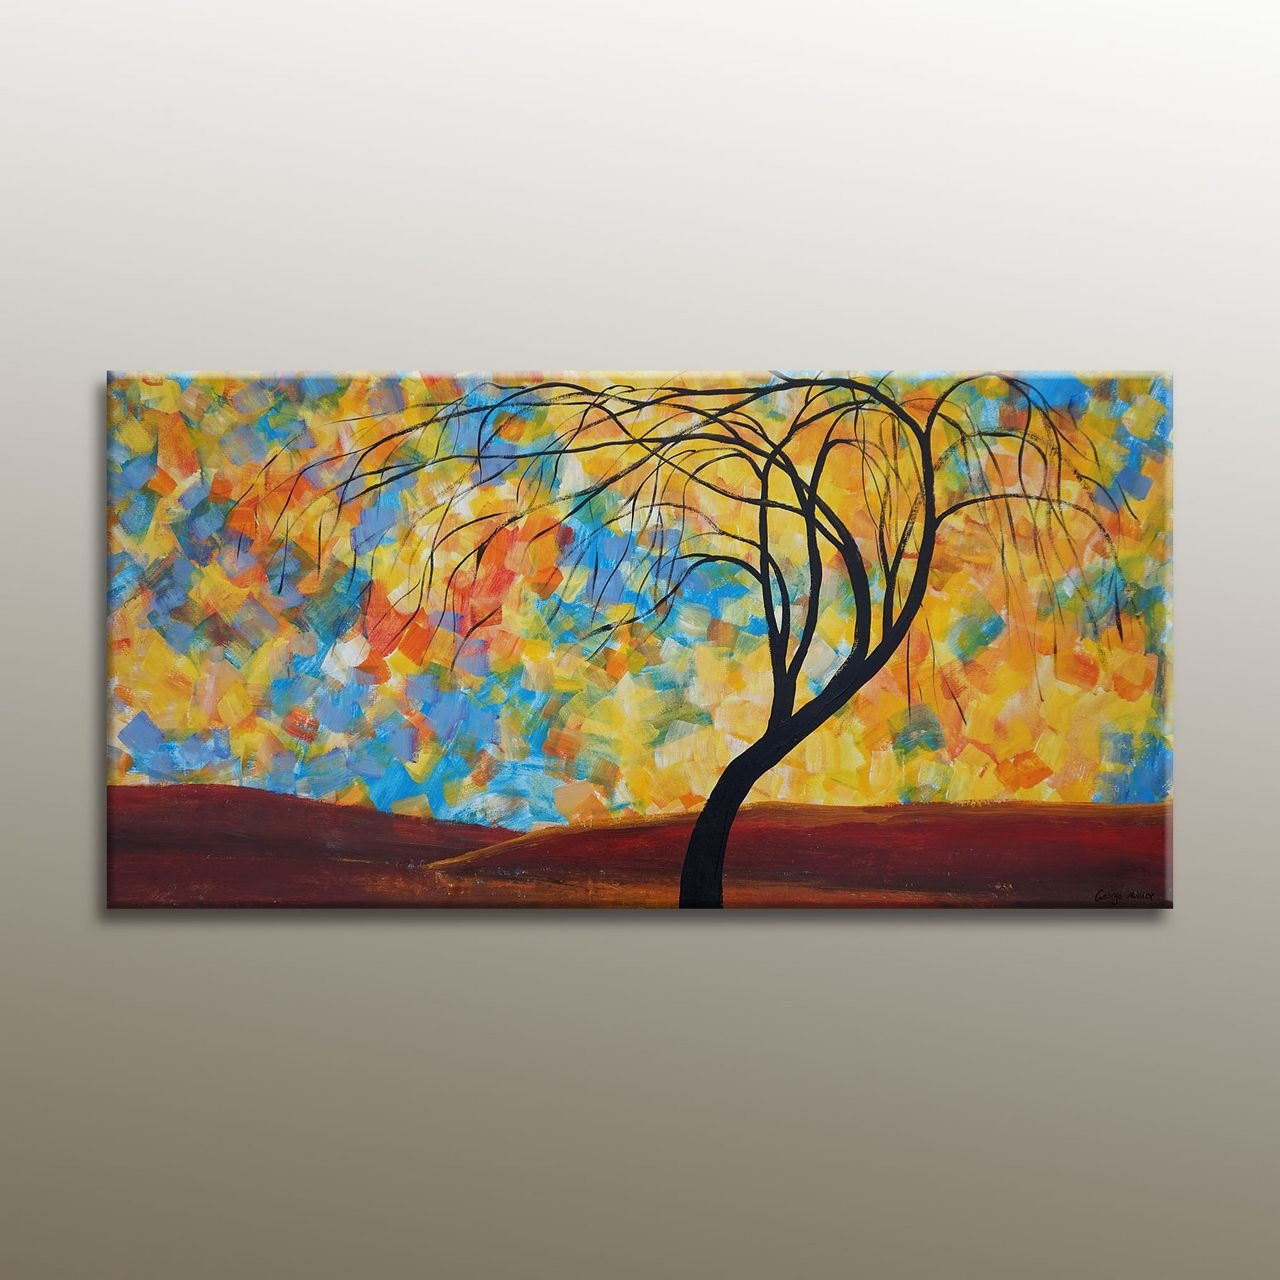 Oil Painting, Tree Art, Large Art, Painting Abstract, Original Painting, Abstract Canvas Art, Bedroom Art, Large Wall Art Canvas